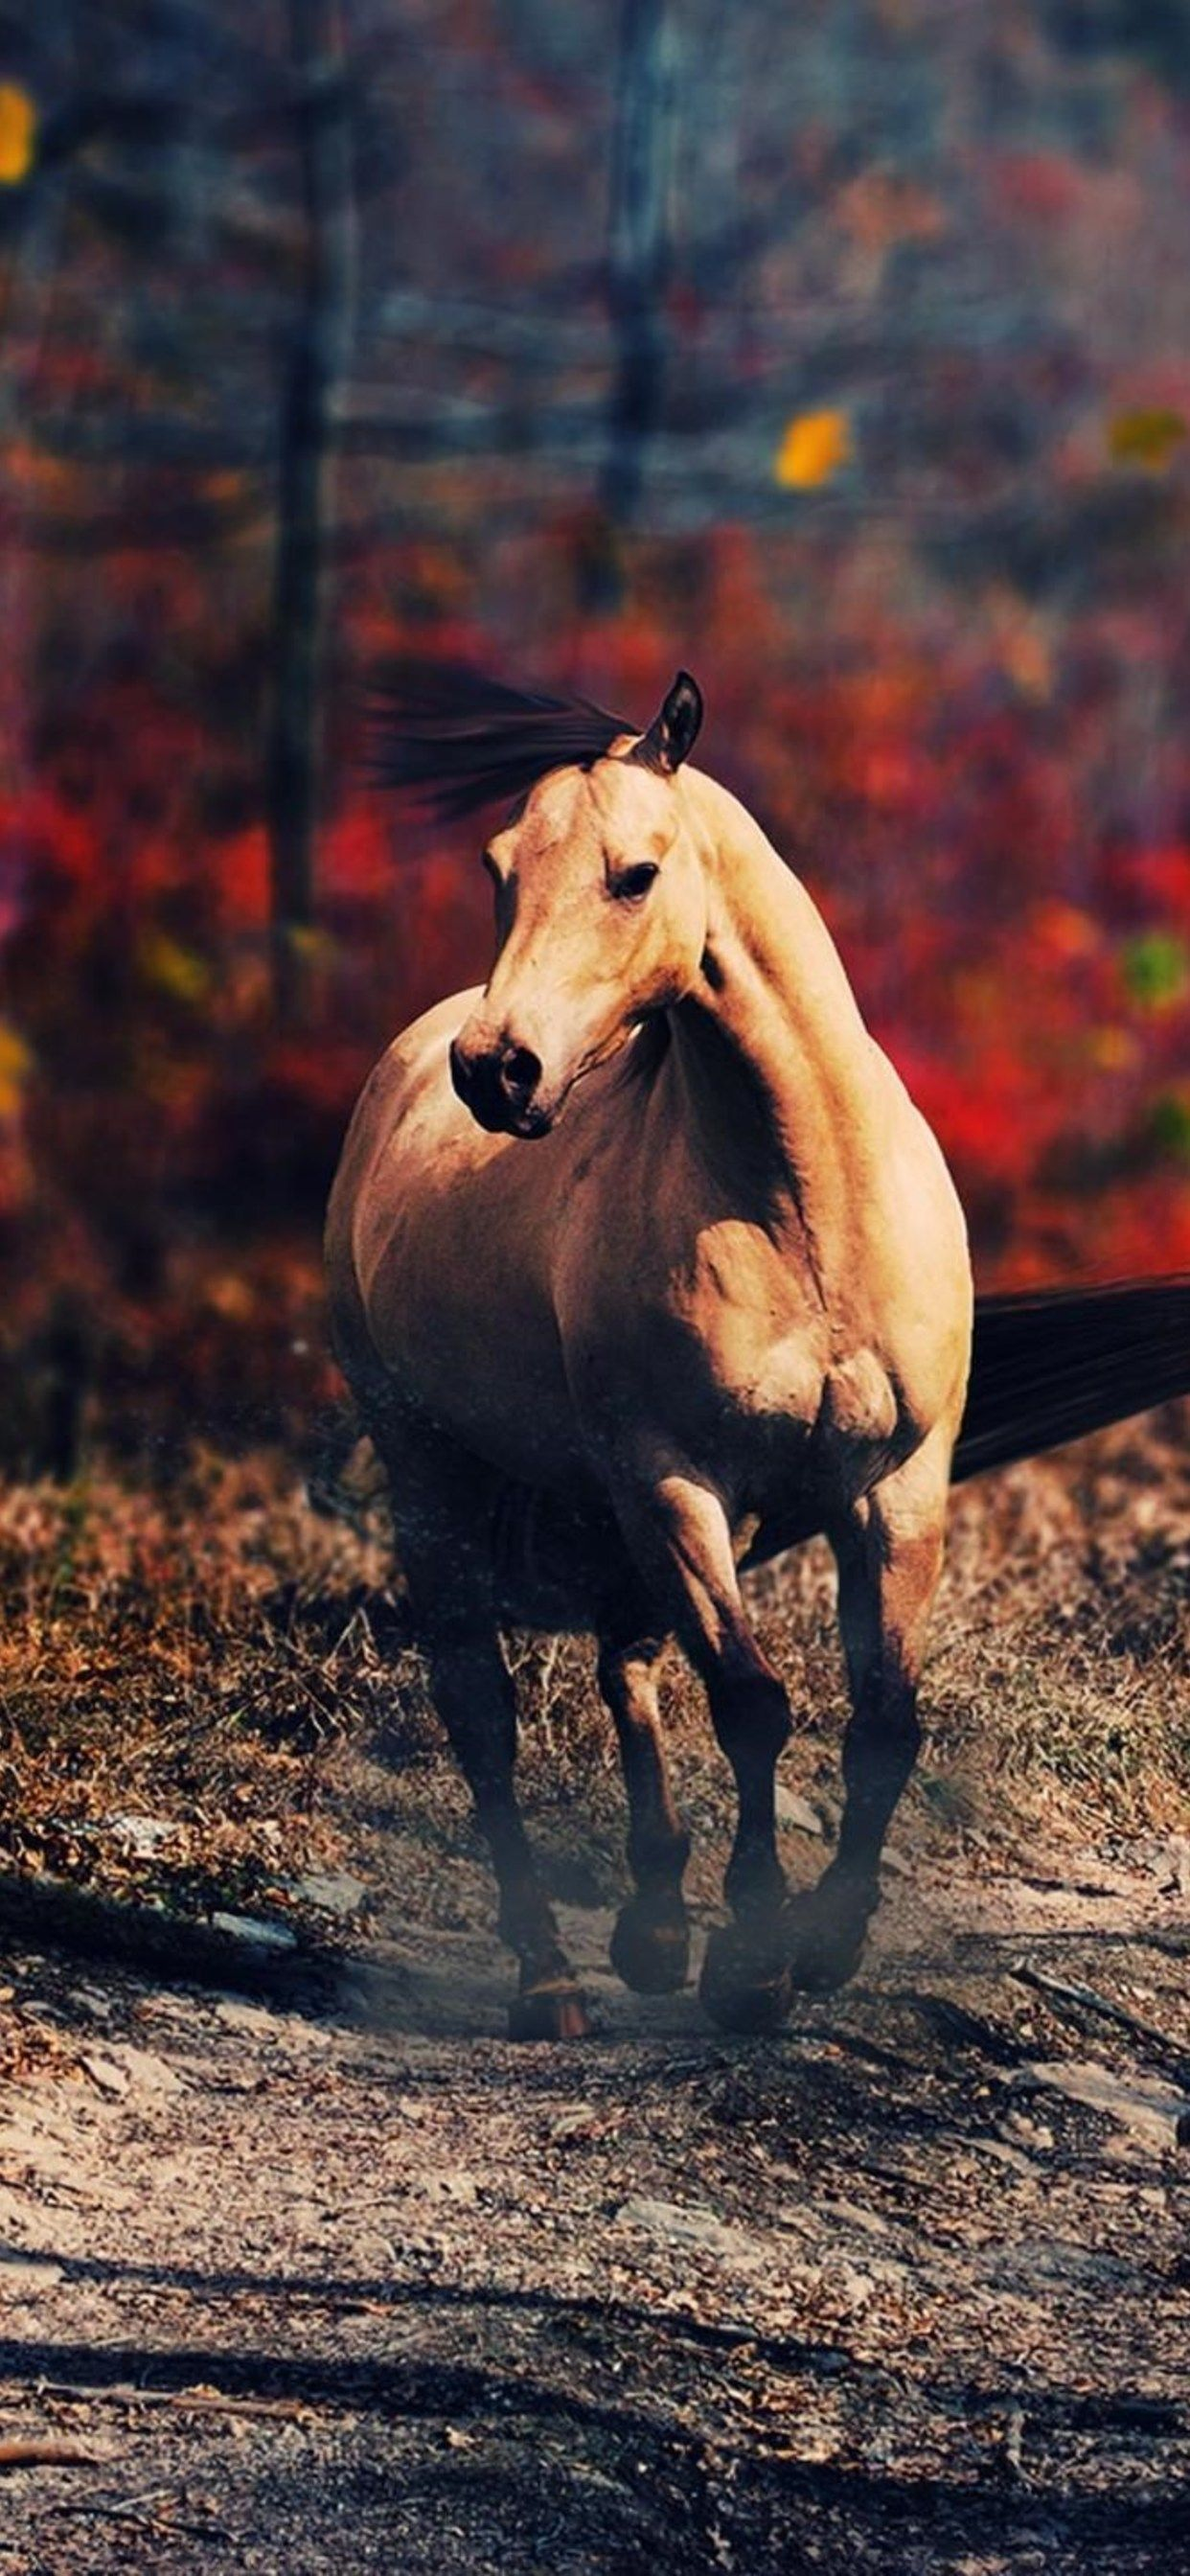 Horse Iphone Wallpapers Top Free Horse Iphone Backgrounds Wallpaperaccess